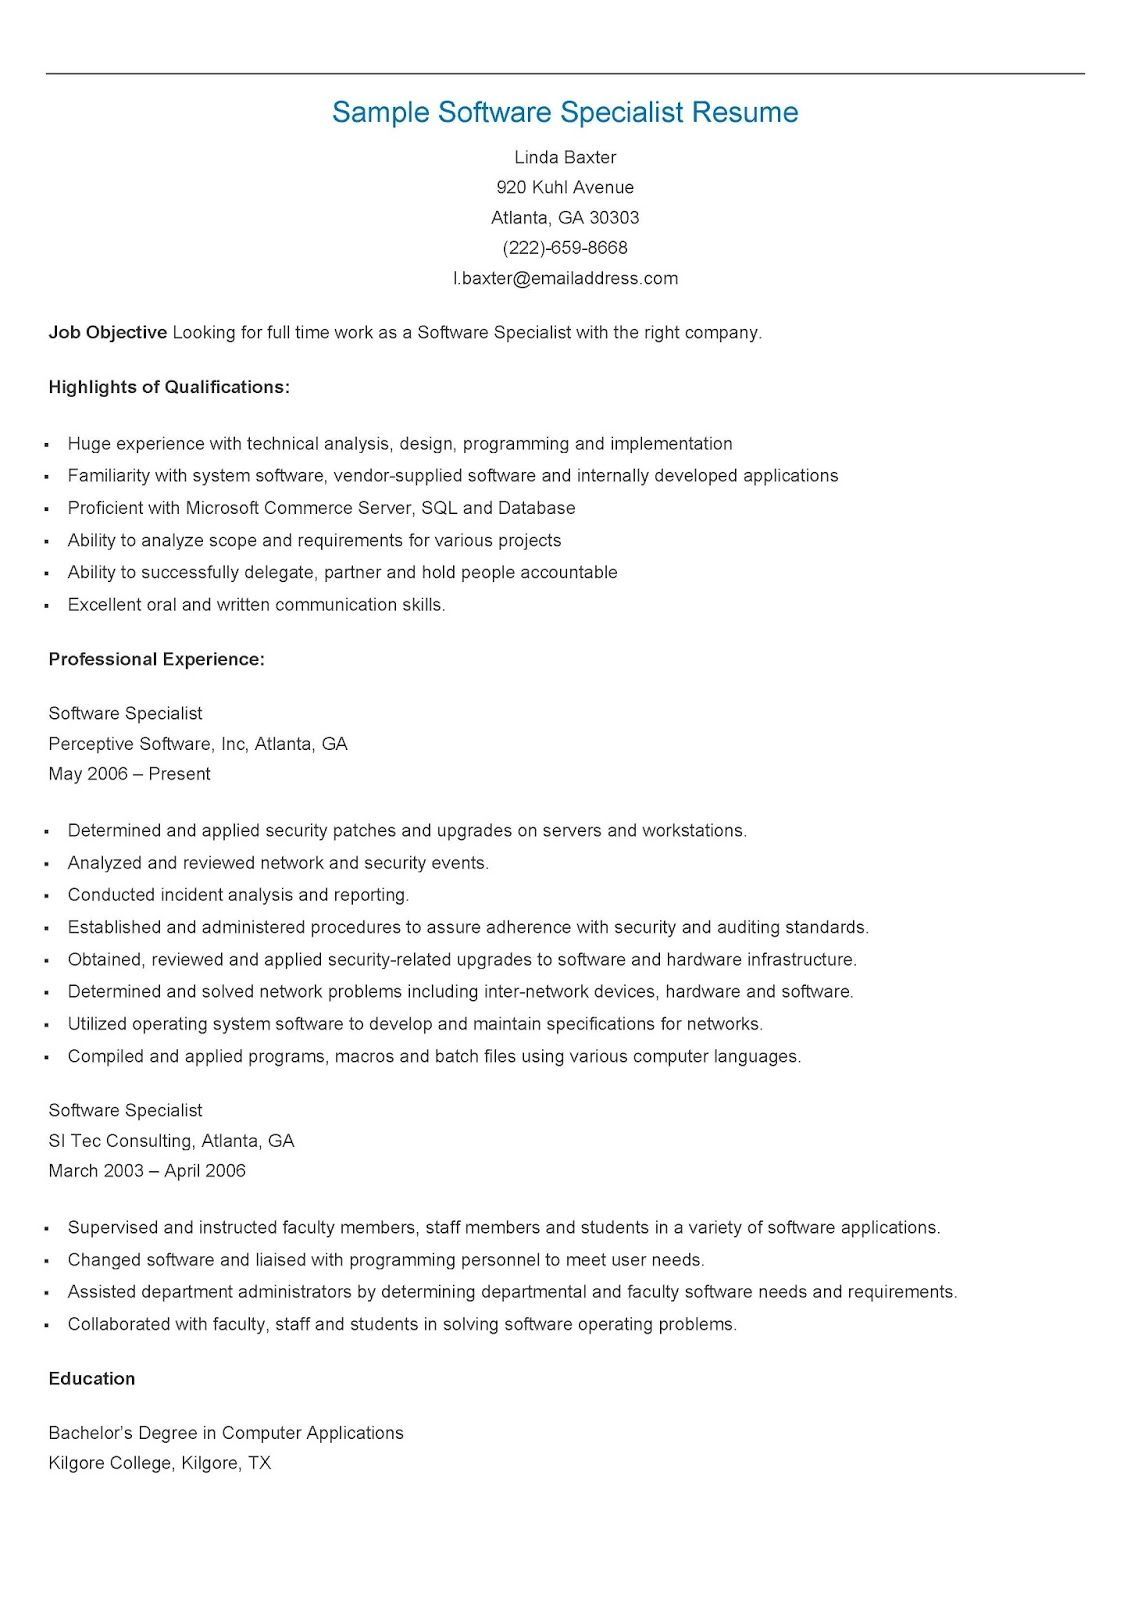 Sample Software Specialist Resume  Resame    Resume